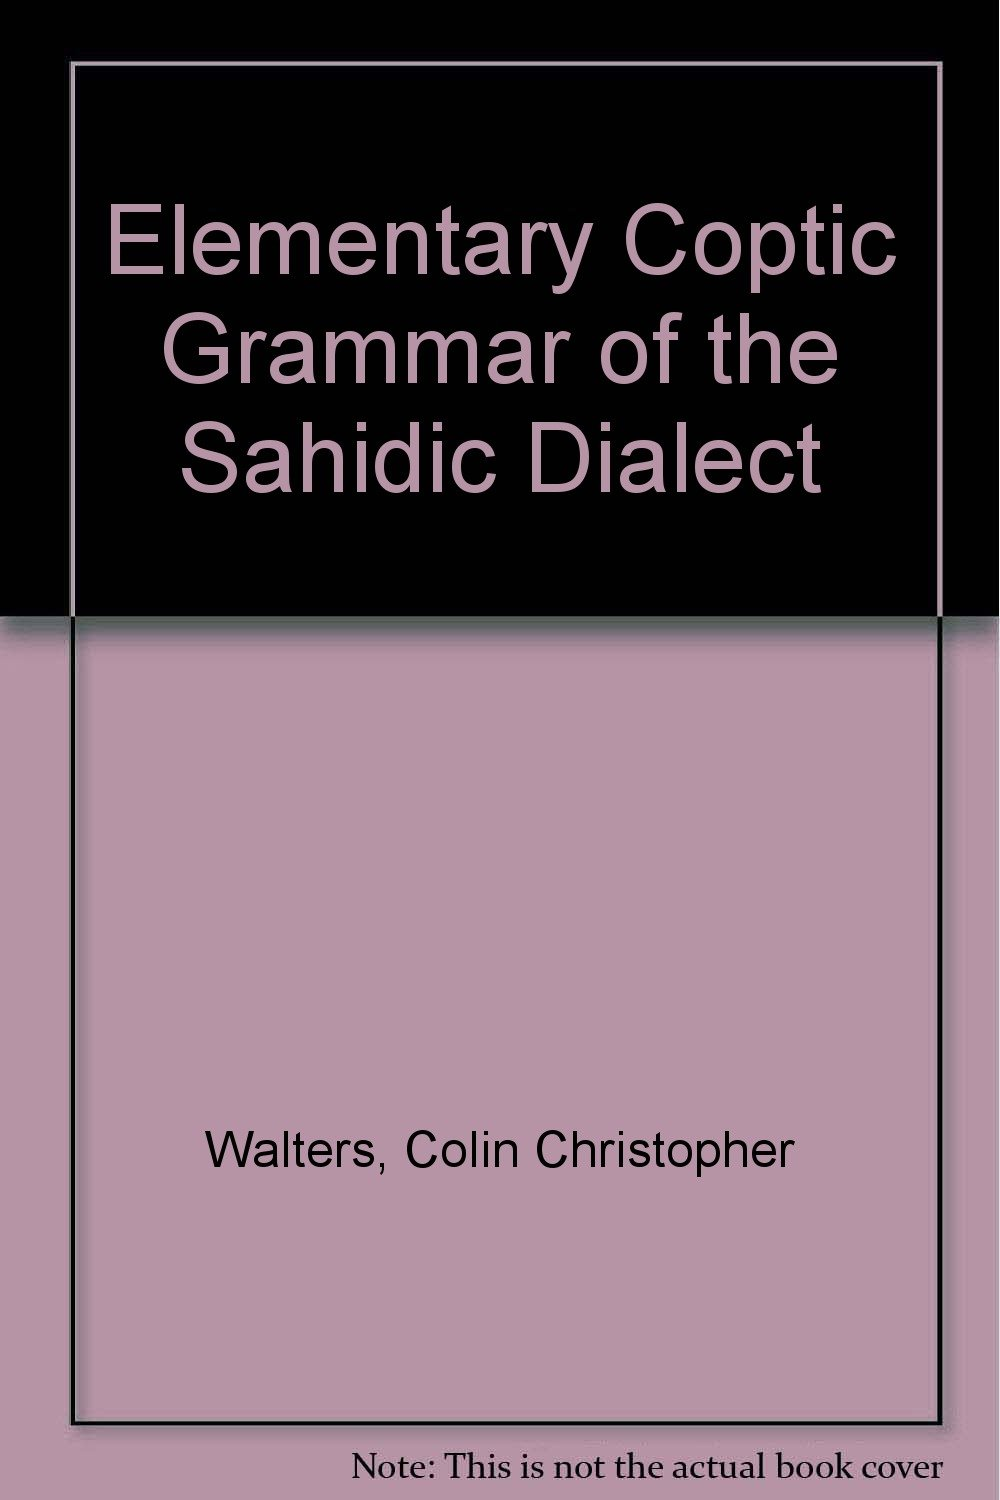 An elementary Coptic grammar of the Sahidic dialect, : C. C Walters: 9780903563000: Amazon.com: Books